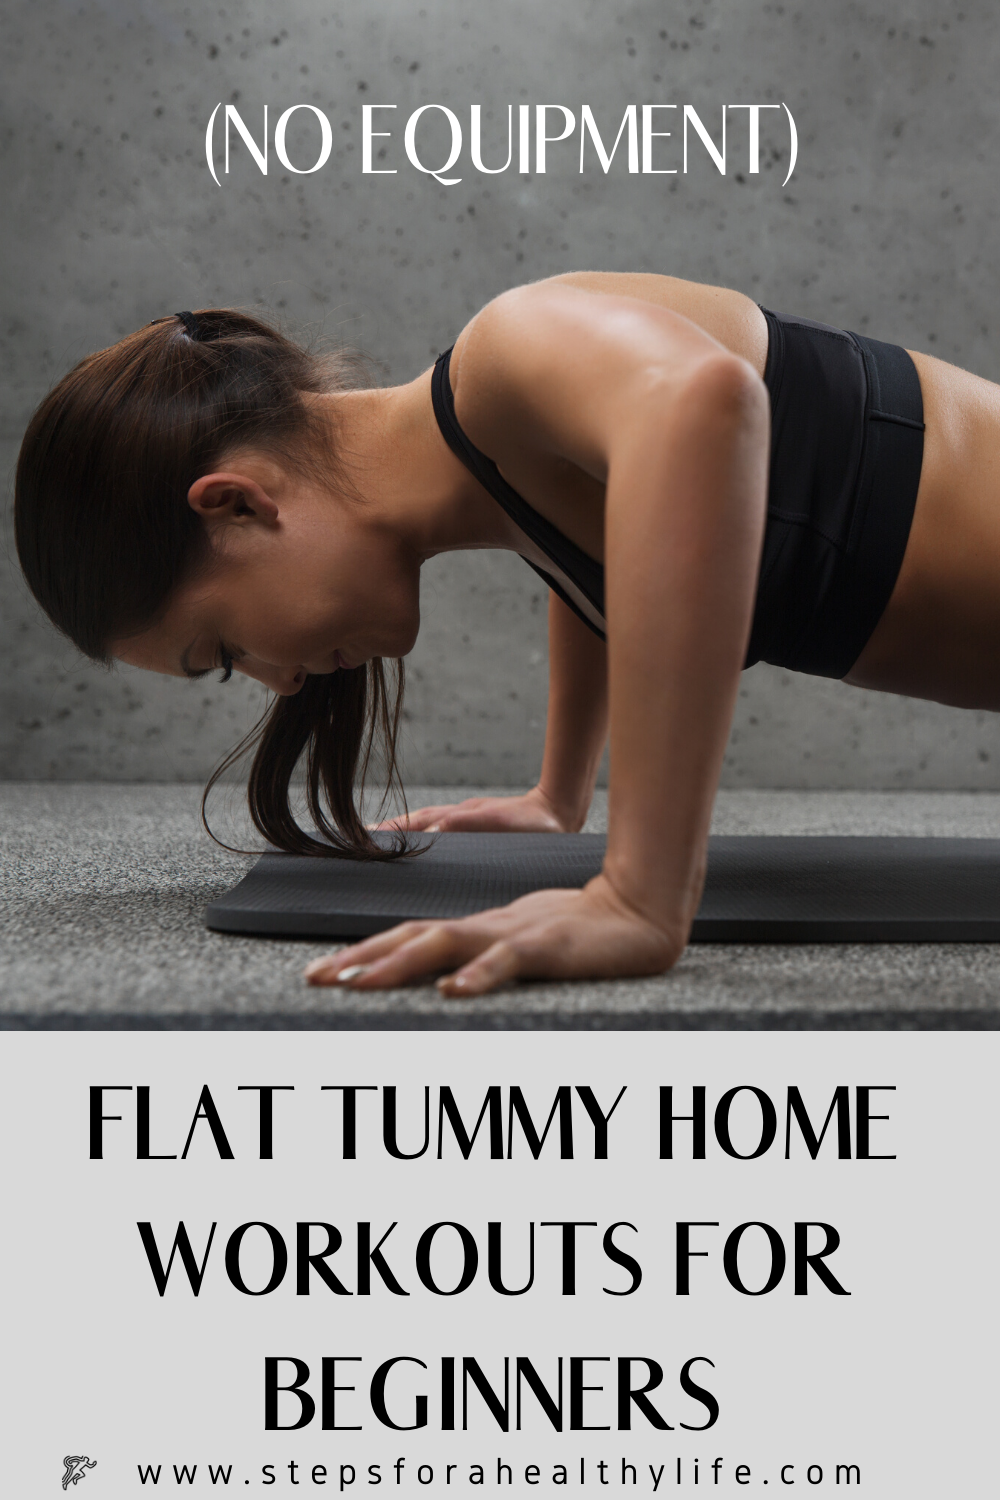 3 FLAT BELLY HOME WORKOUTS FOR BEGINNERS �‍️�‍️